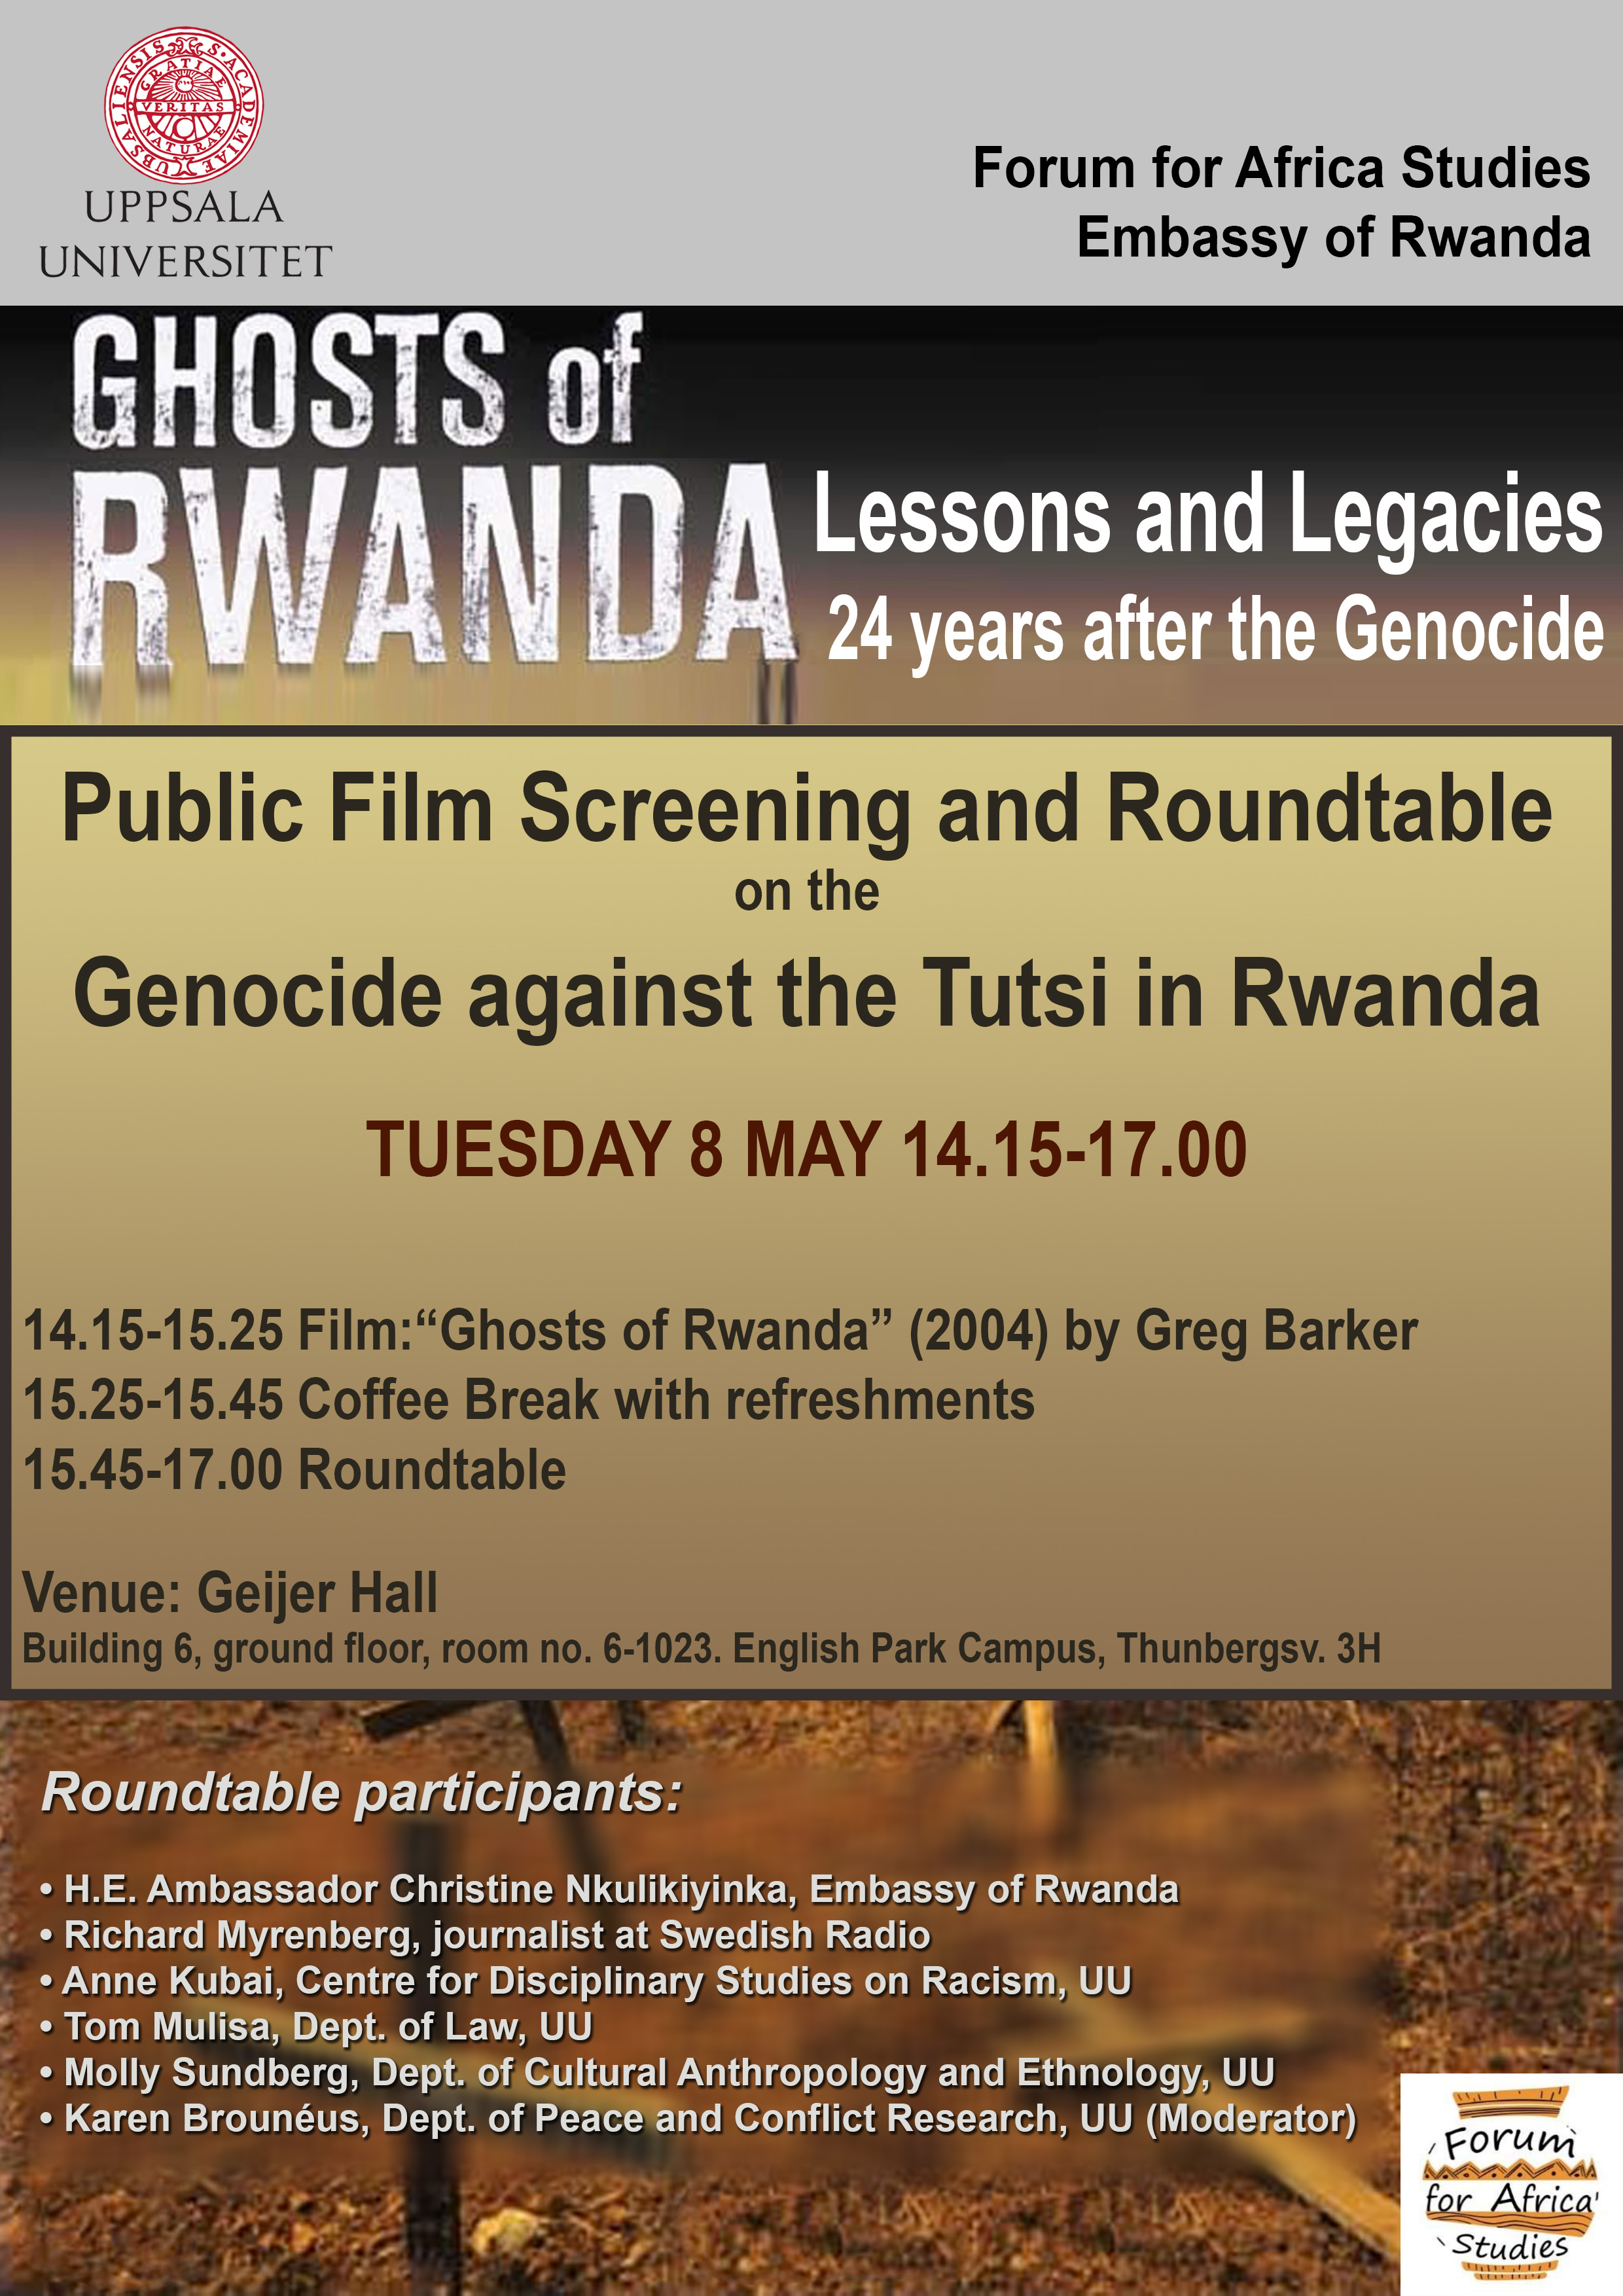 Public Film Screening and Roundtable on the Genocide in Rwanda 8 May